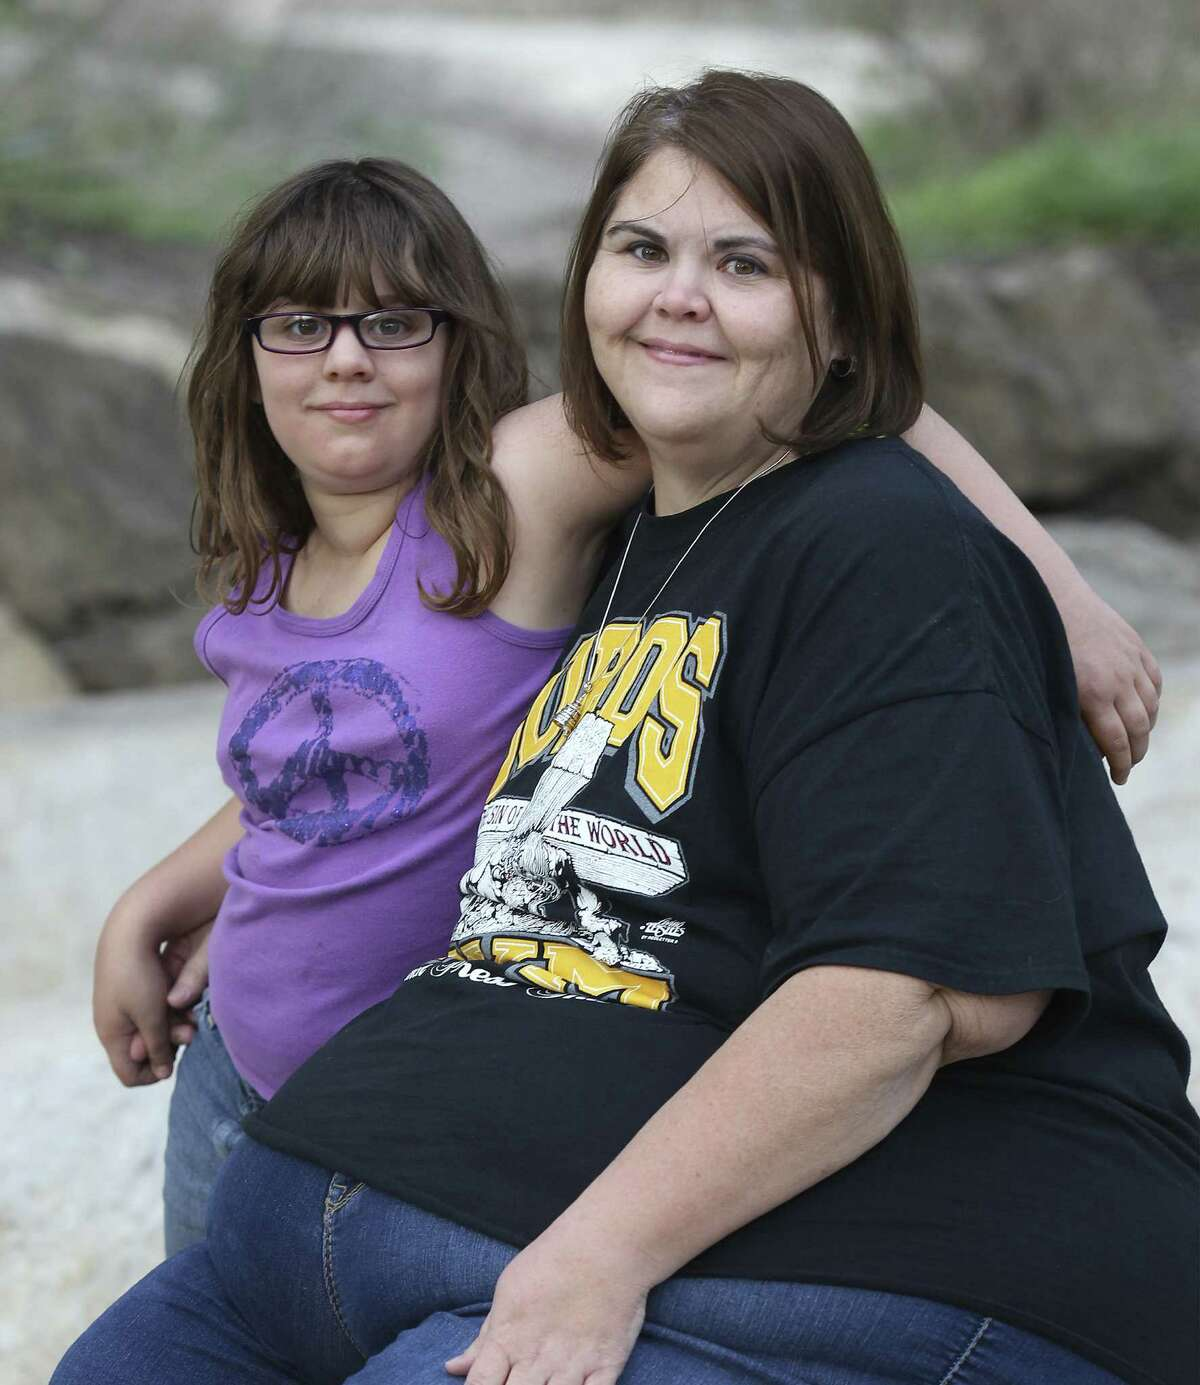 After gastric-bypass surgery, Zsalynn Whitworth, who once weighed nearly 600 pounds, has lost more than a third of her body weight. Among the benefits - enjoying activities with her daughter, Hannah Wainwright, 9.